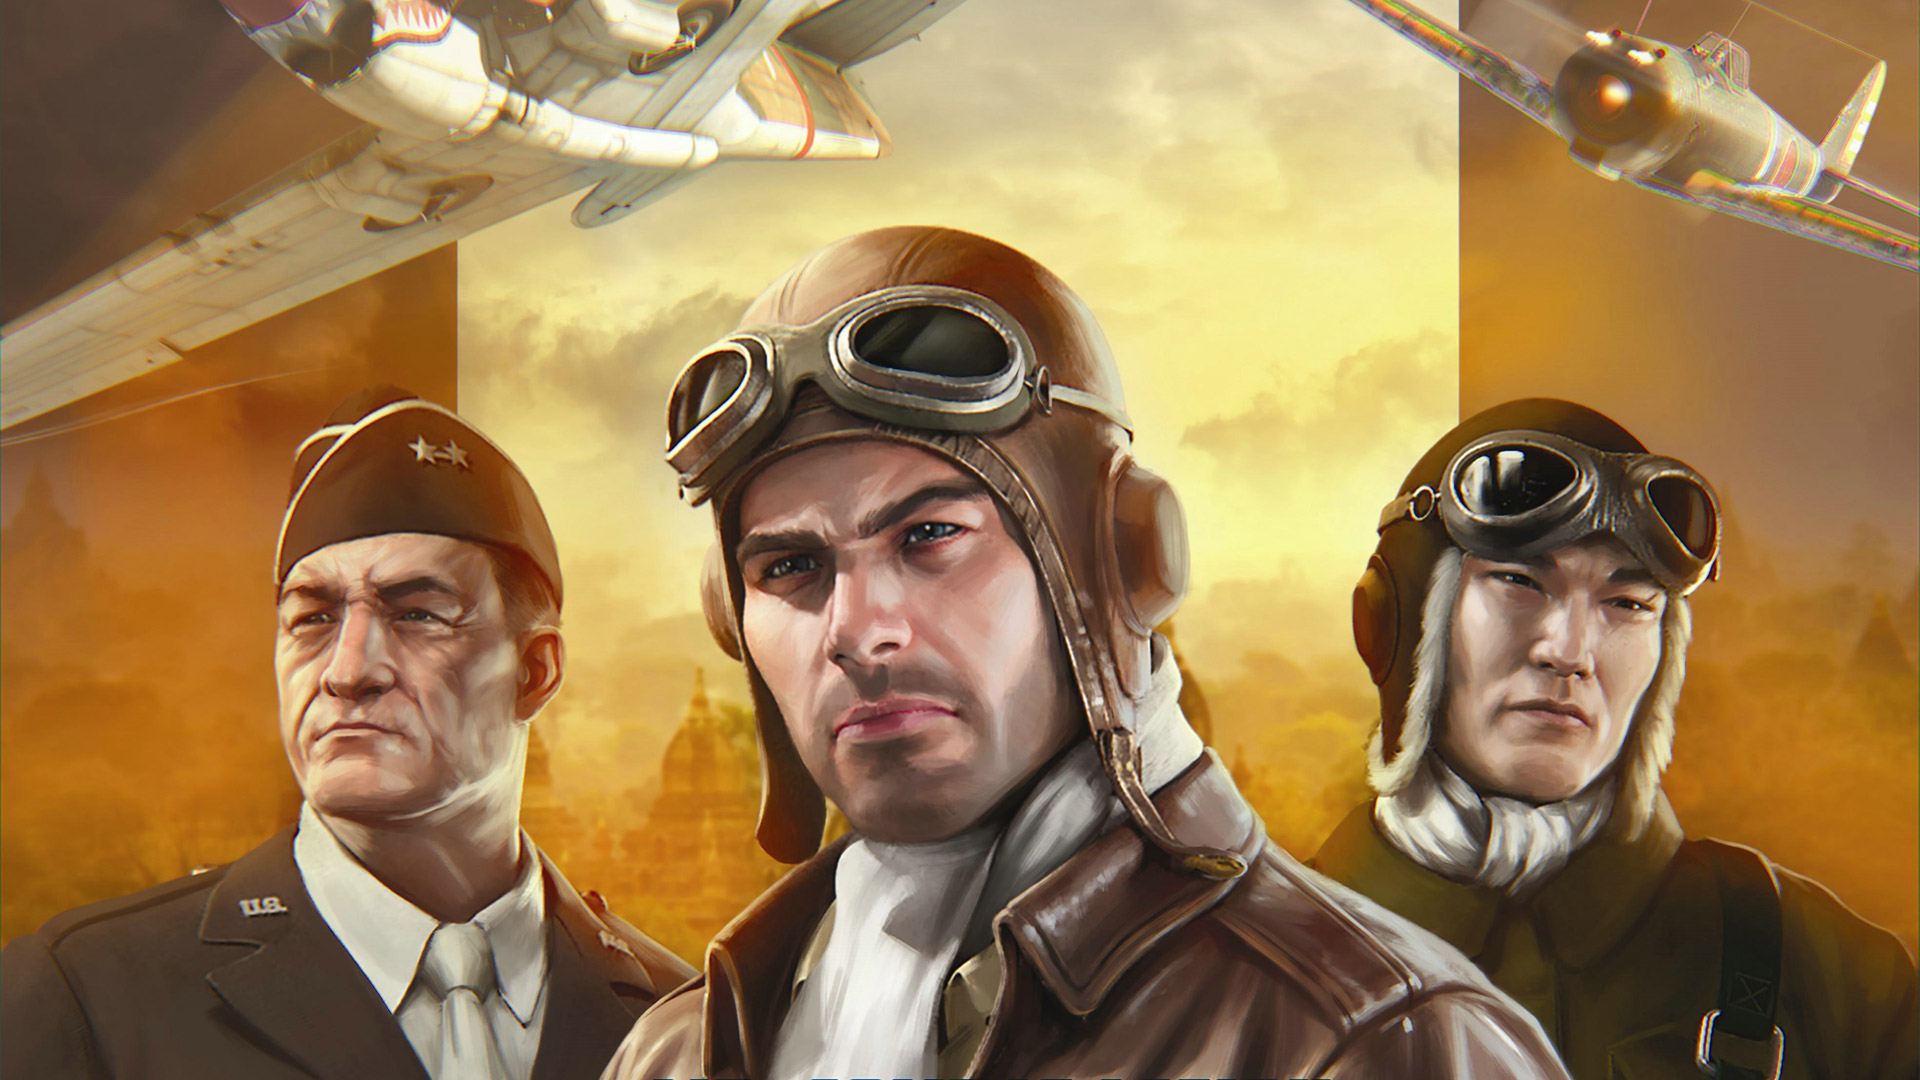 Free Flying Tigers: Shadows Over China Wallpaper in 1920x1080